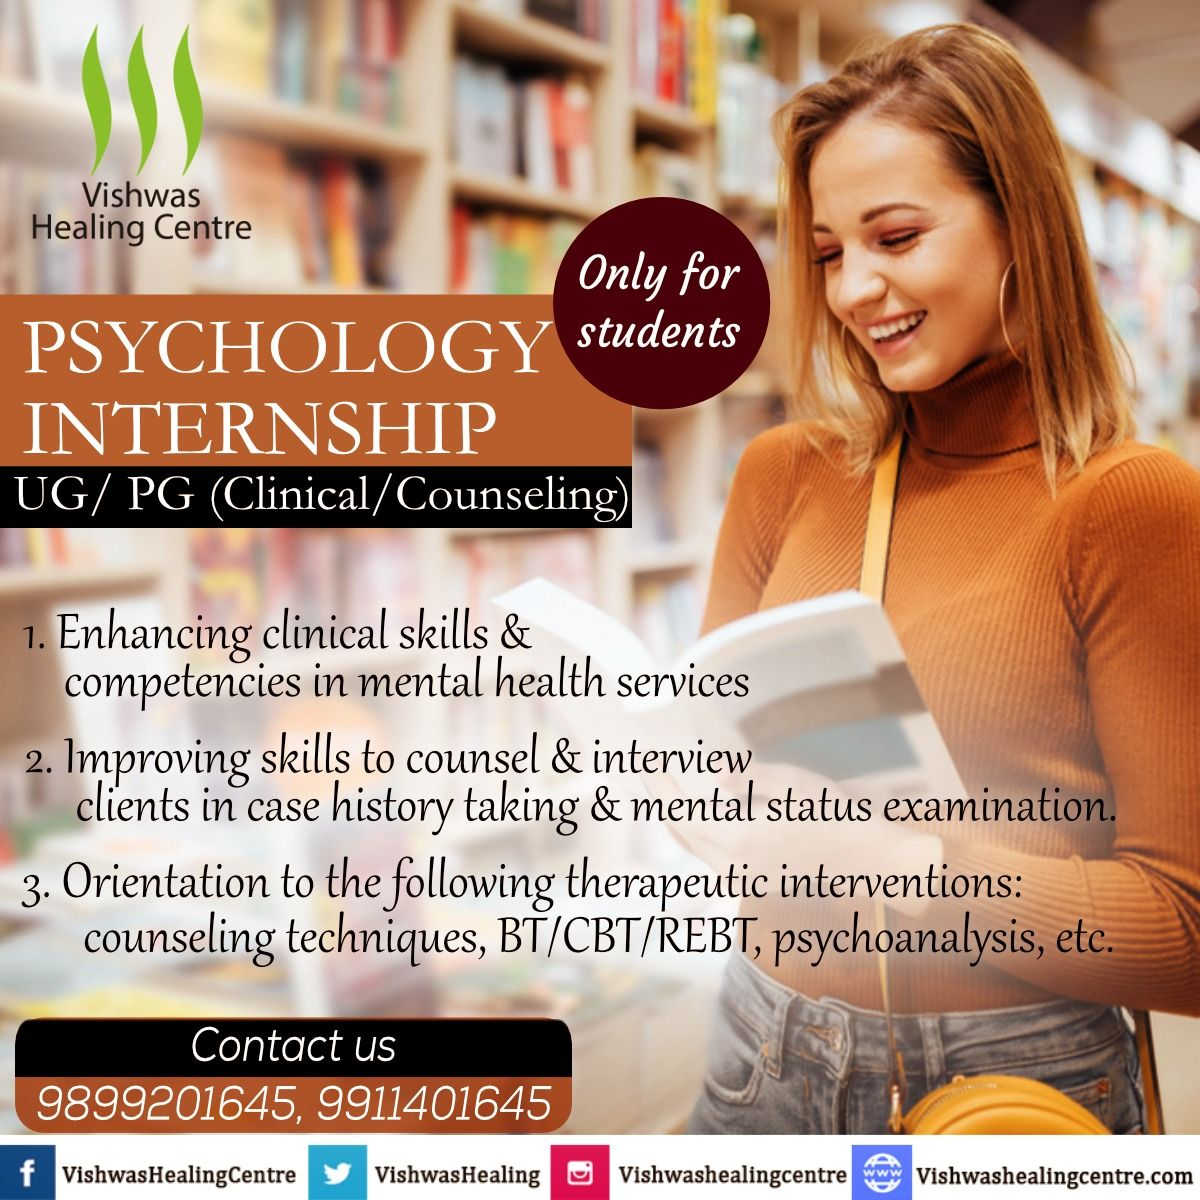 In This Internship Program Aims To Provide Theoretical Inputs Hands On Clinical Experience I Psychology Internships Counseling Techniques Psychology Student